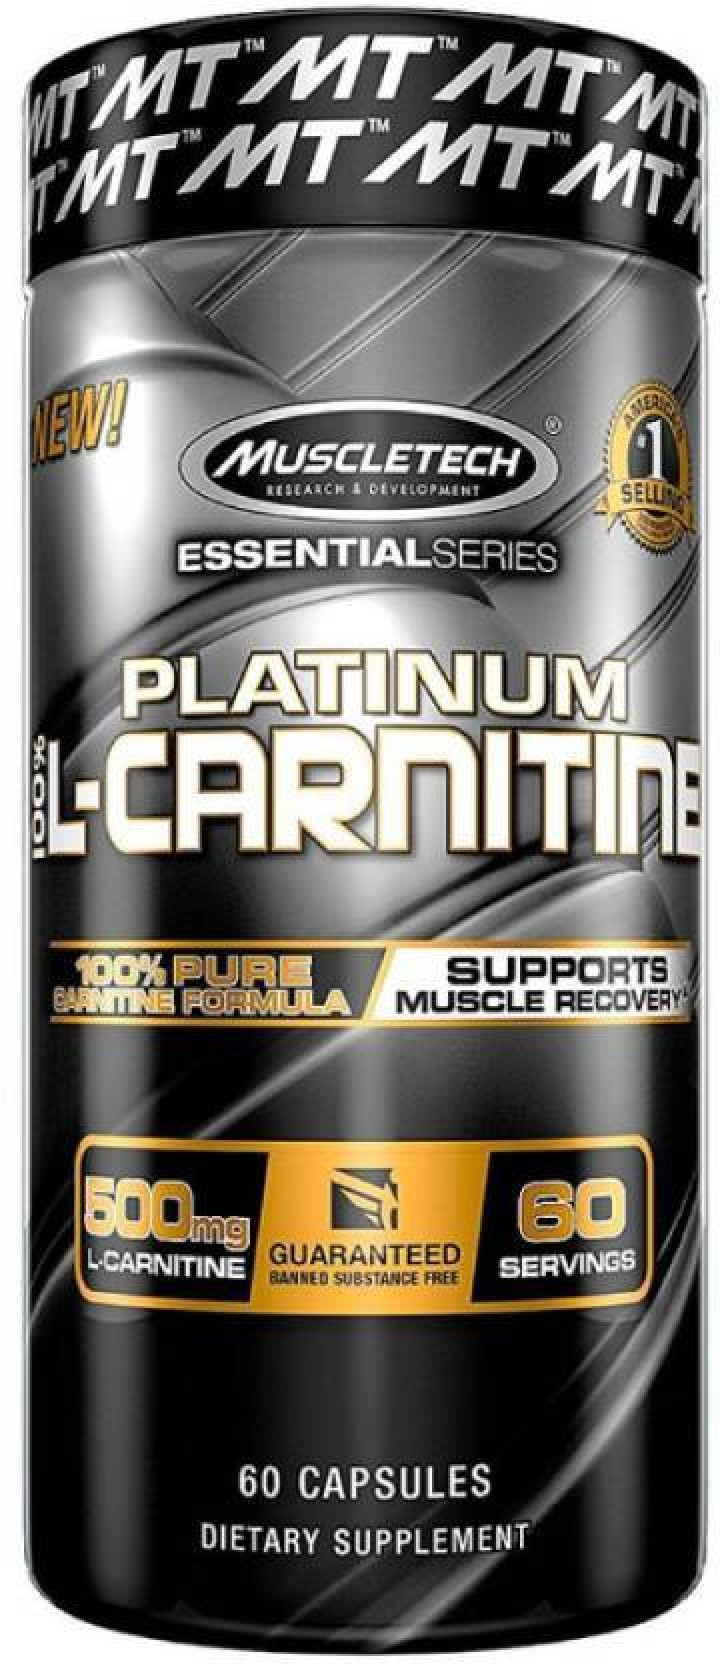 ... best cheap bccbc 3dec7 Muscletech Essential Series Platinum L-carnitine  Price in India . ... 50ddfc951